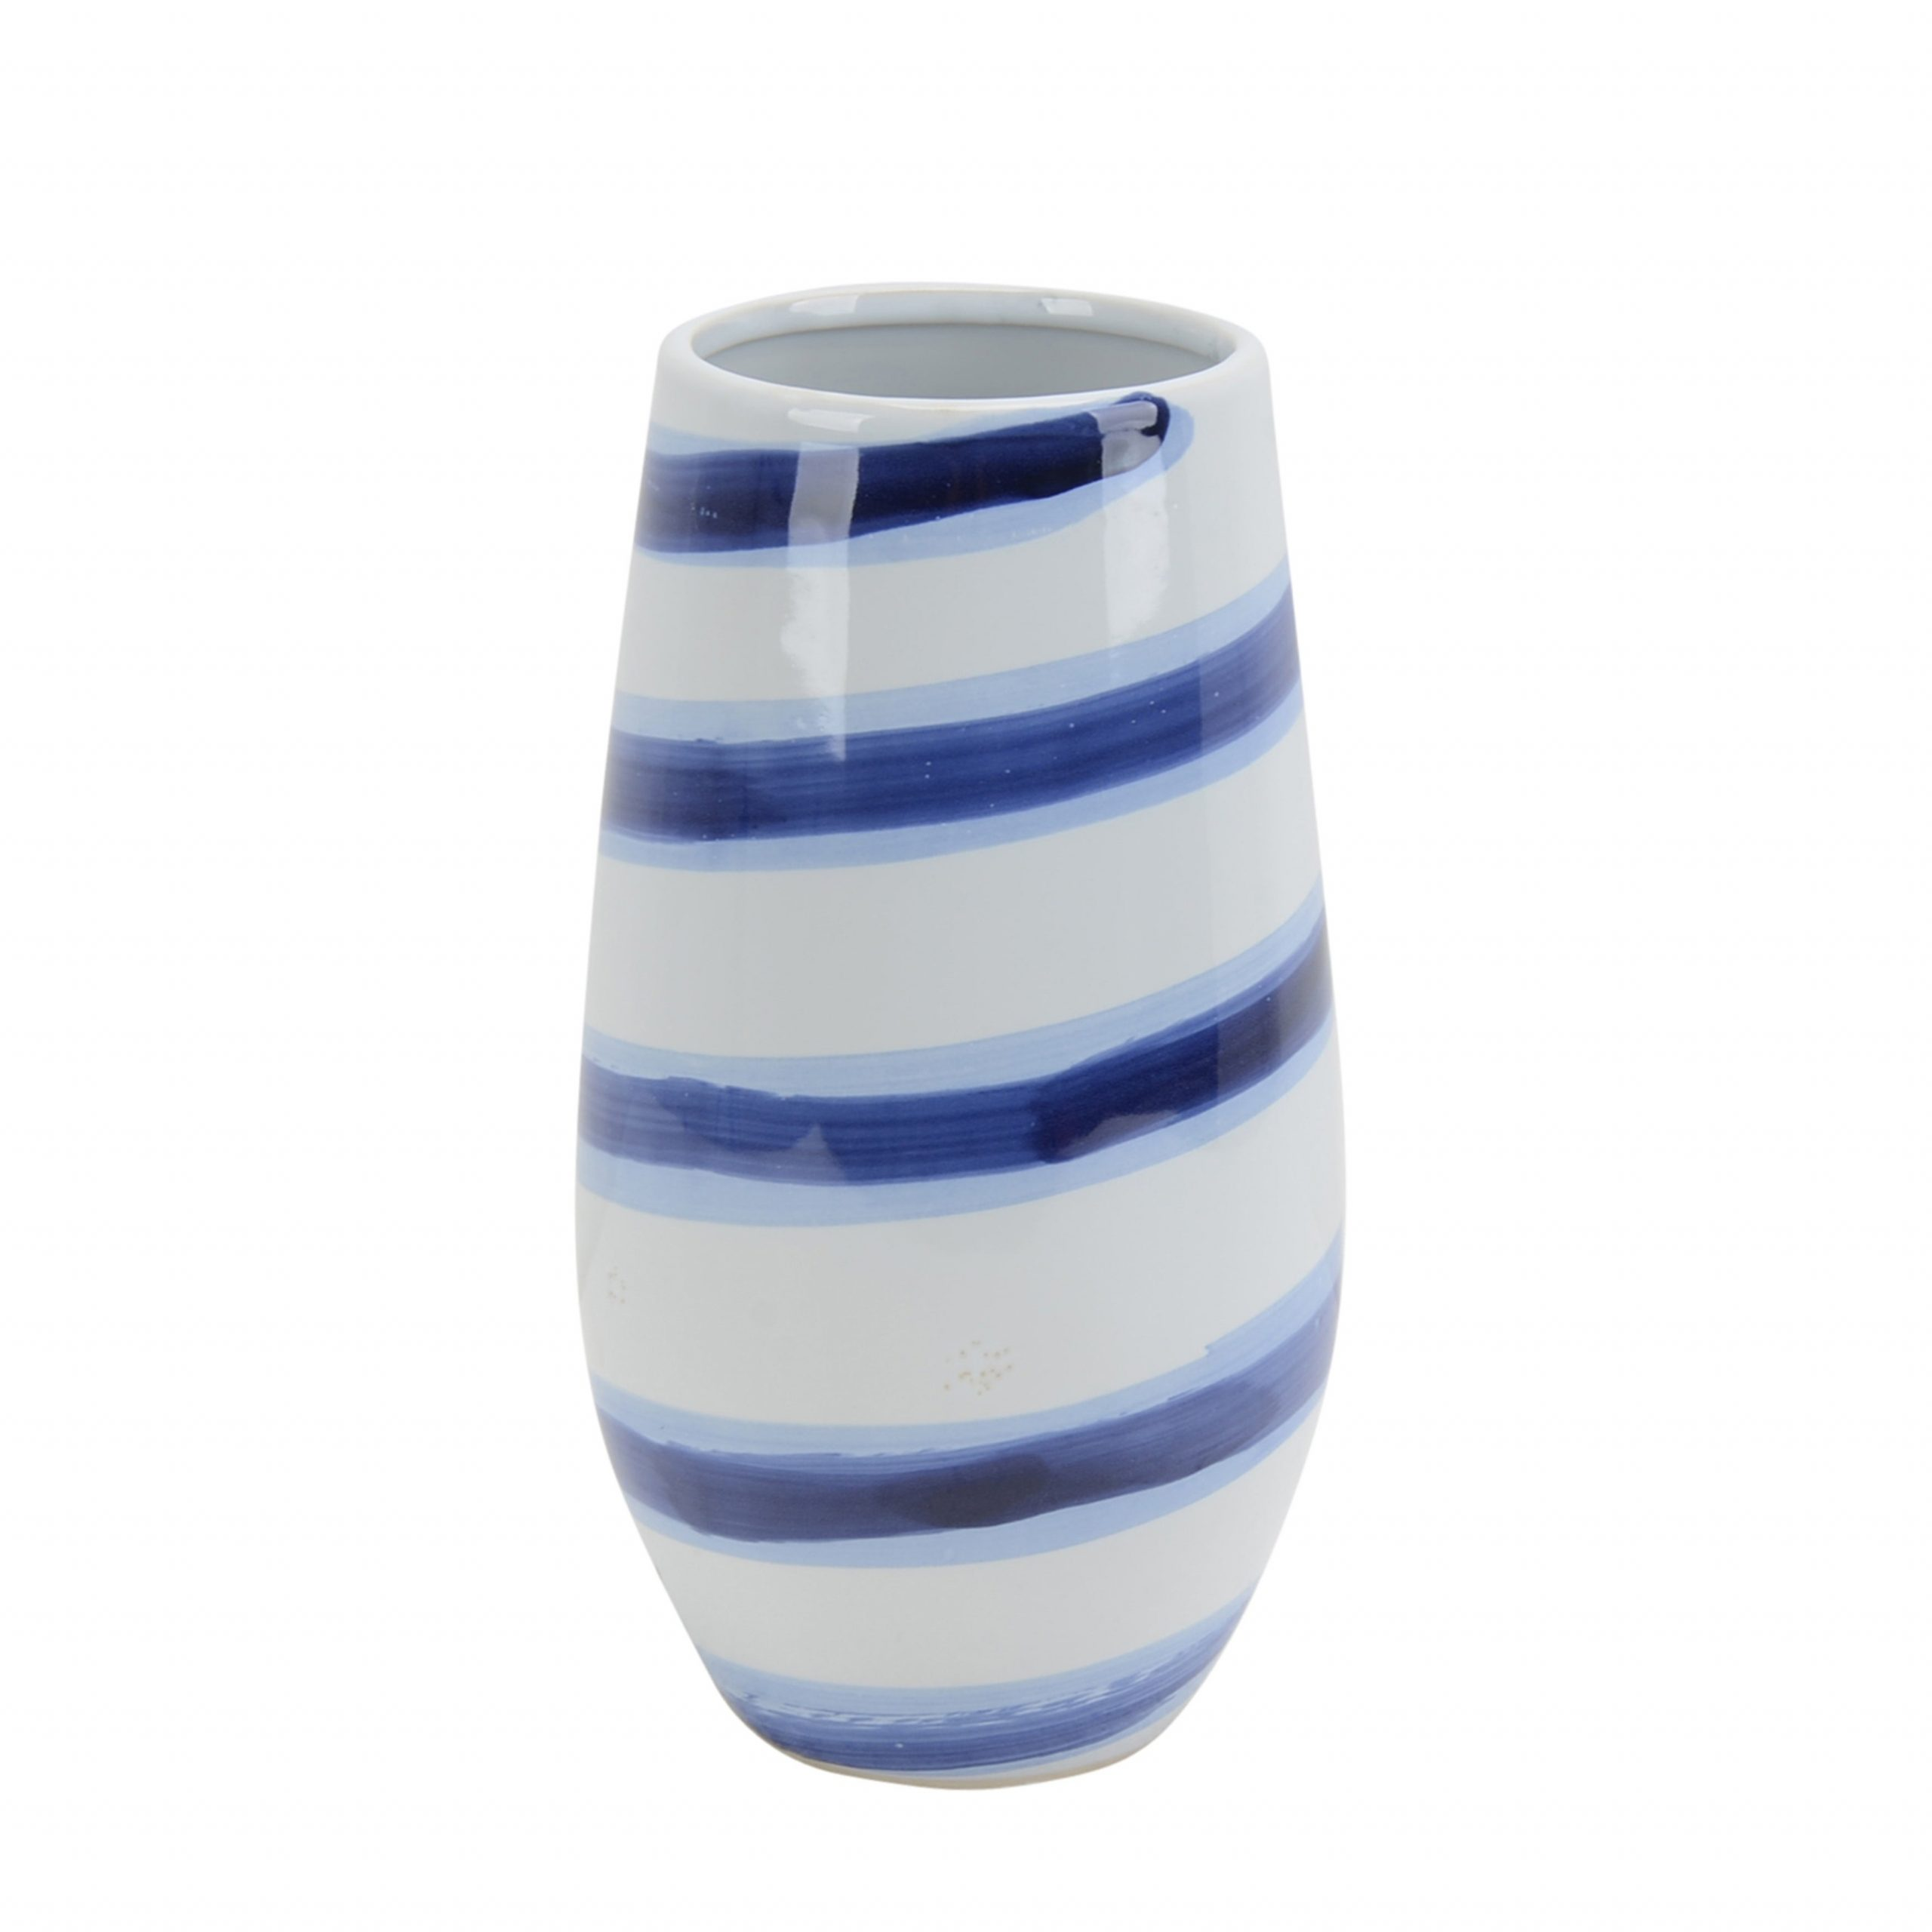 Decorative Ceramic Vase With Striped Design Blue And White throughout dimensions 3500 X 3500